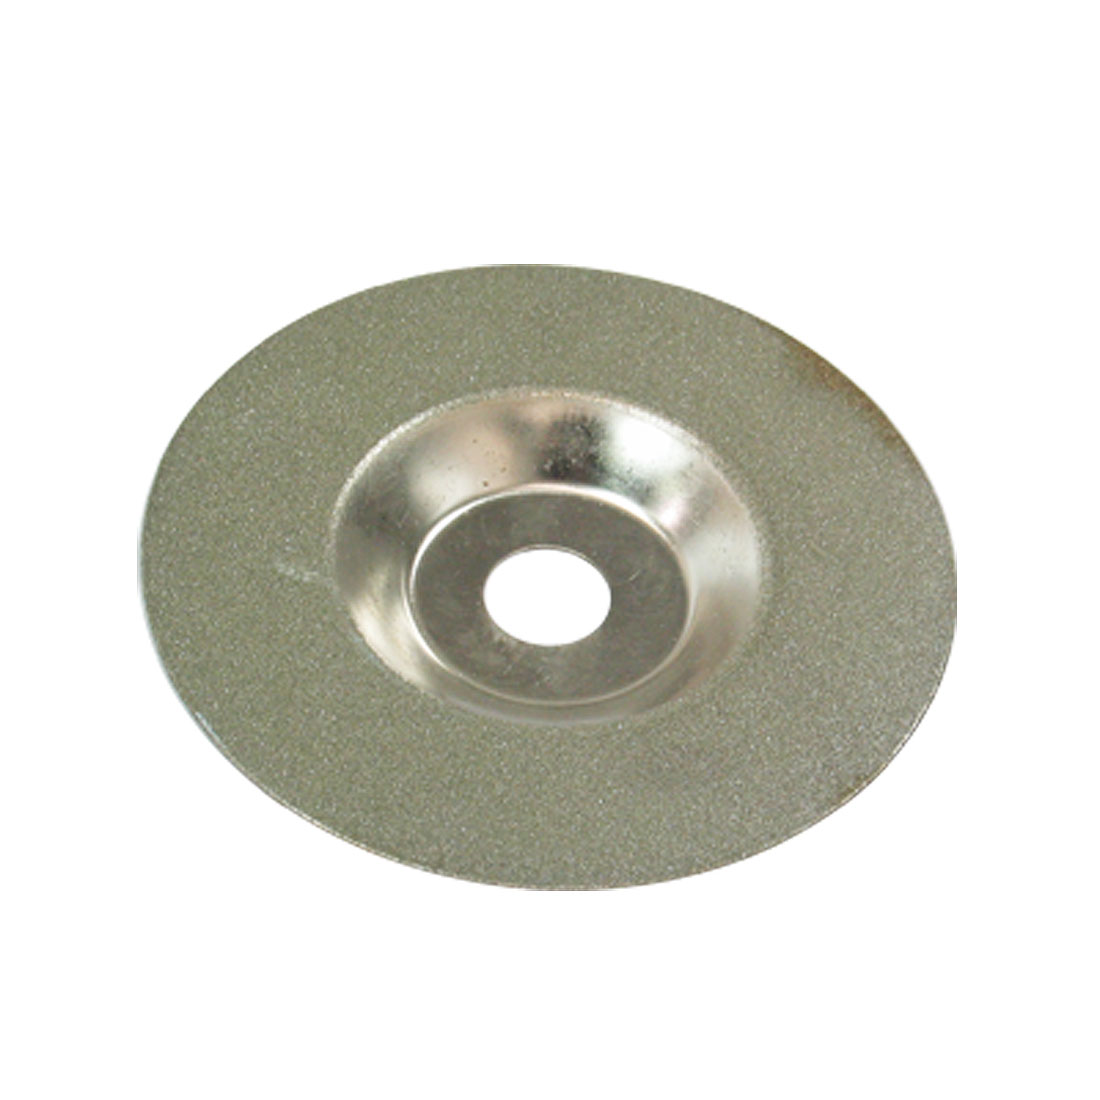 Reduced Sparking Wheel Glass Diamond Grinding Disc 3.8""